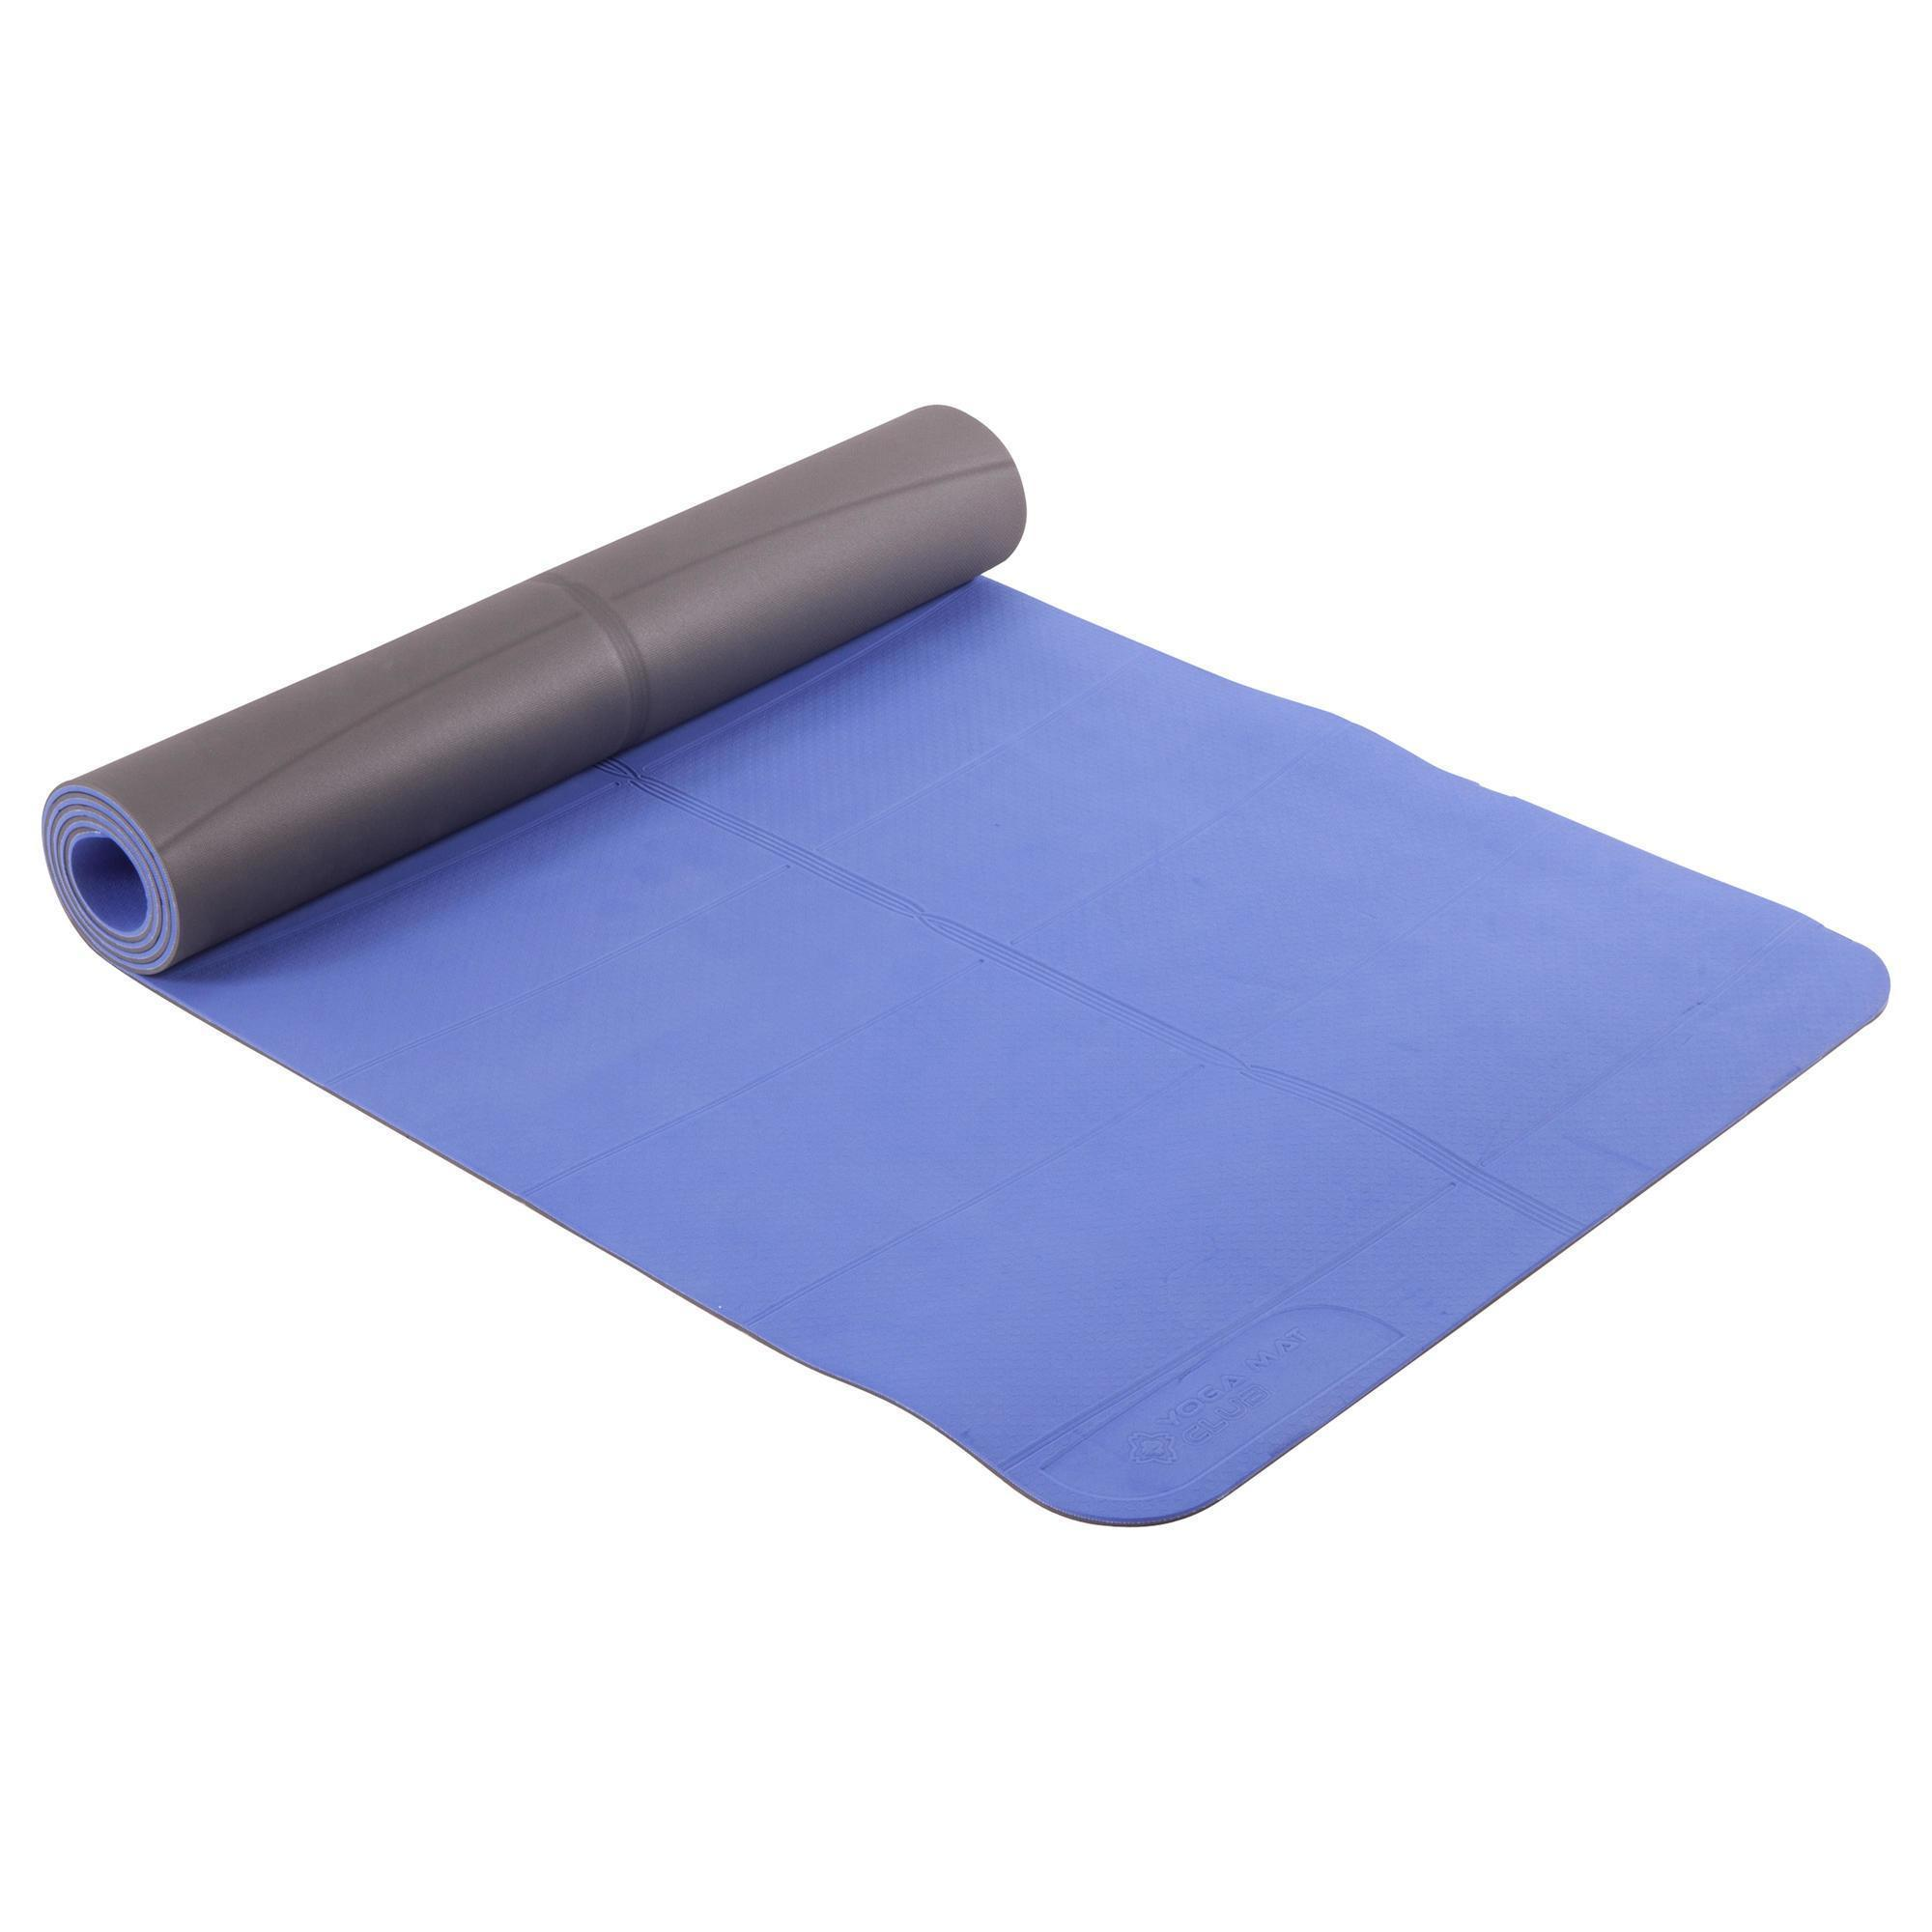 Tappetino Yoga Decatlon Accessori Tappetino Yoga 5mm Azzurro